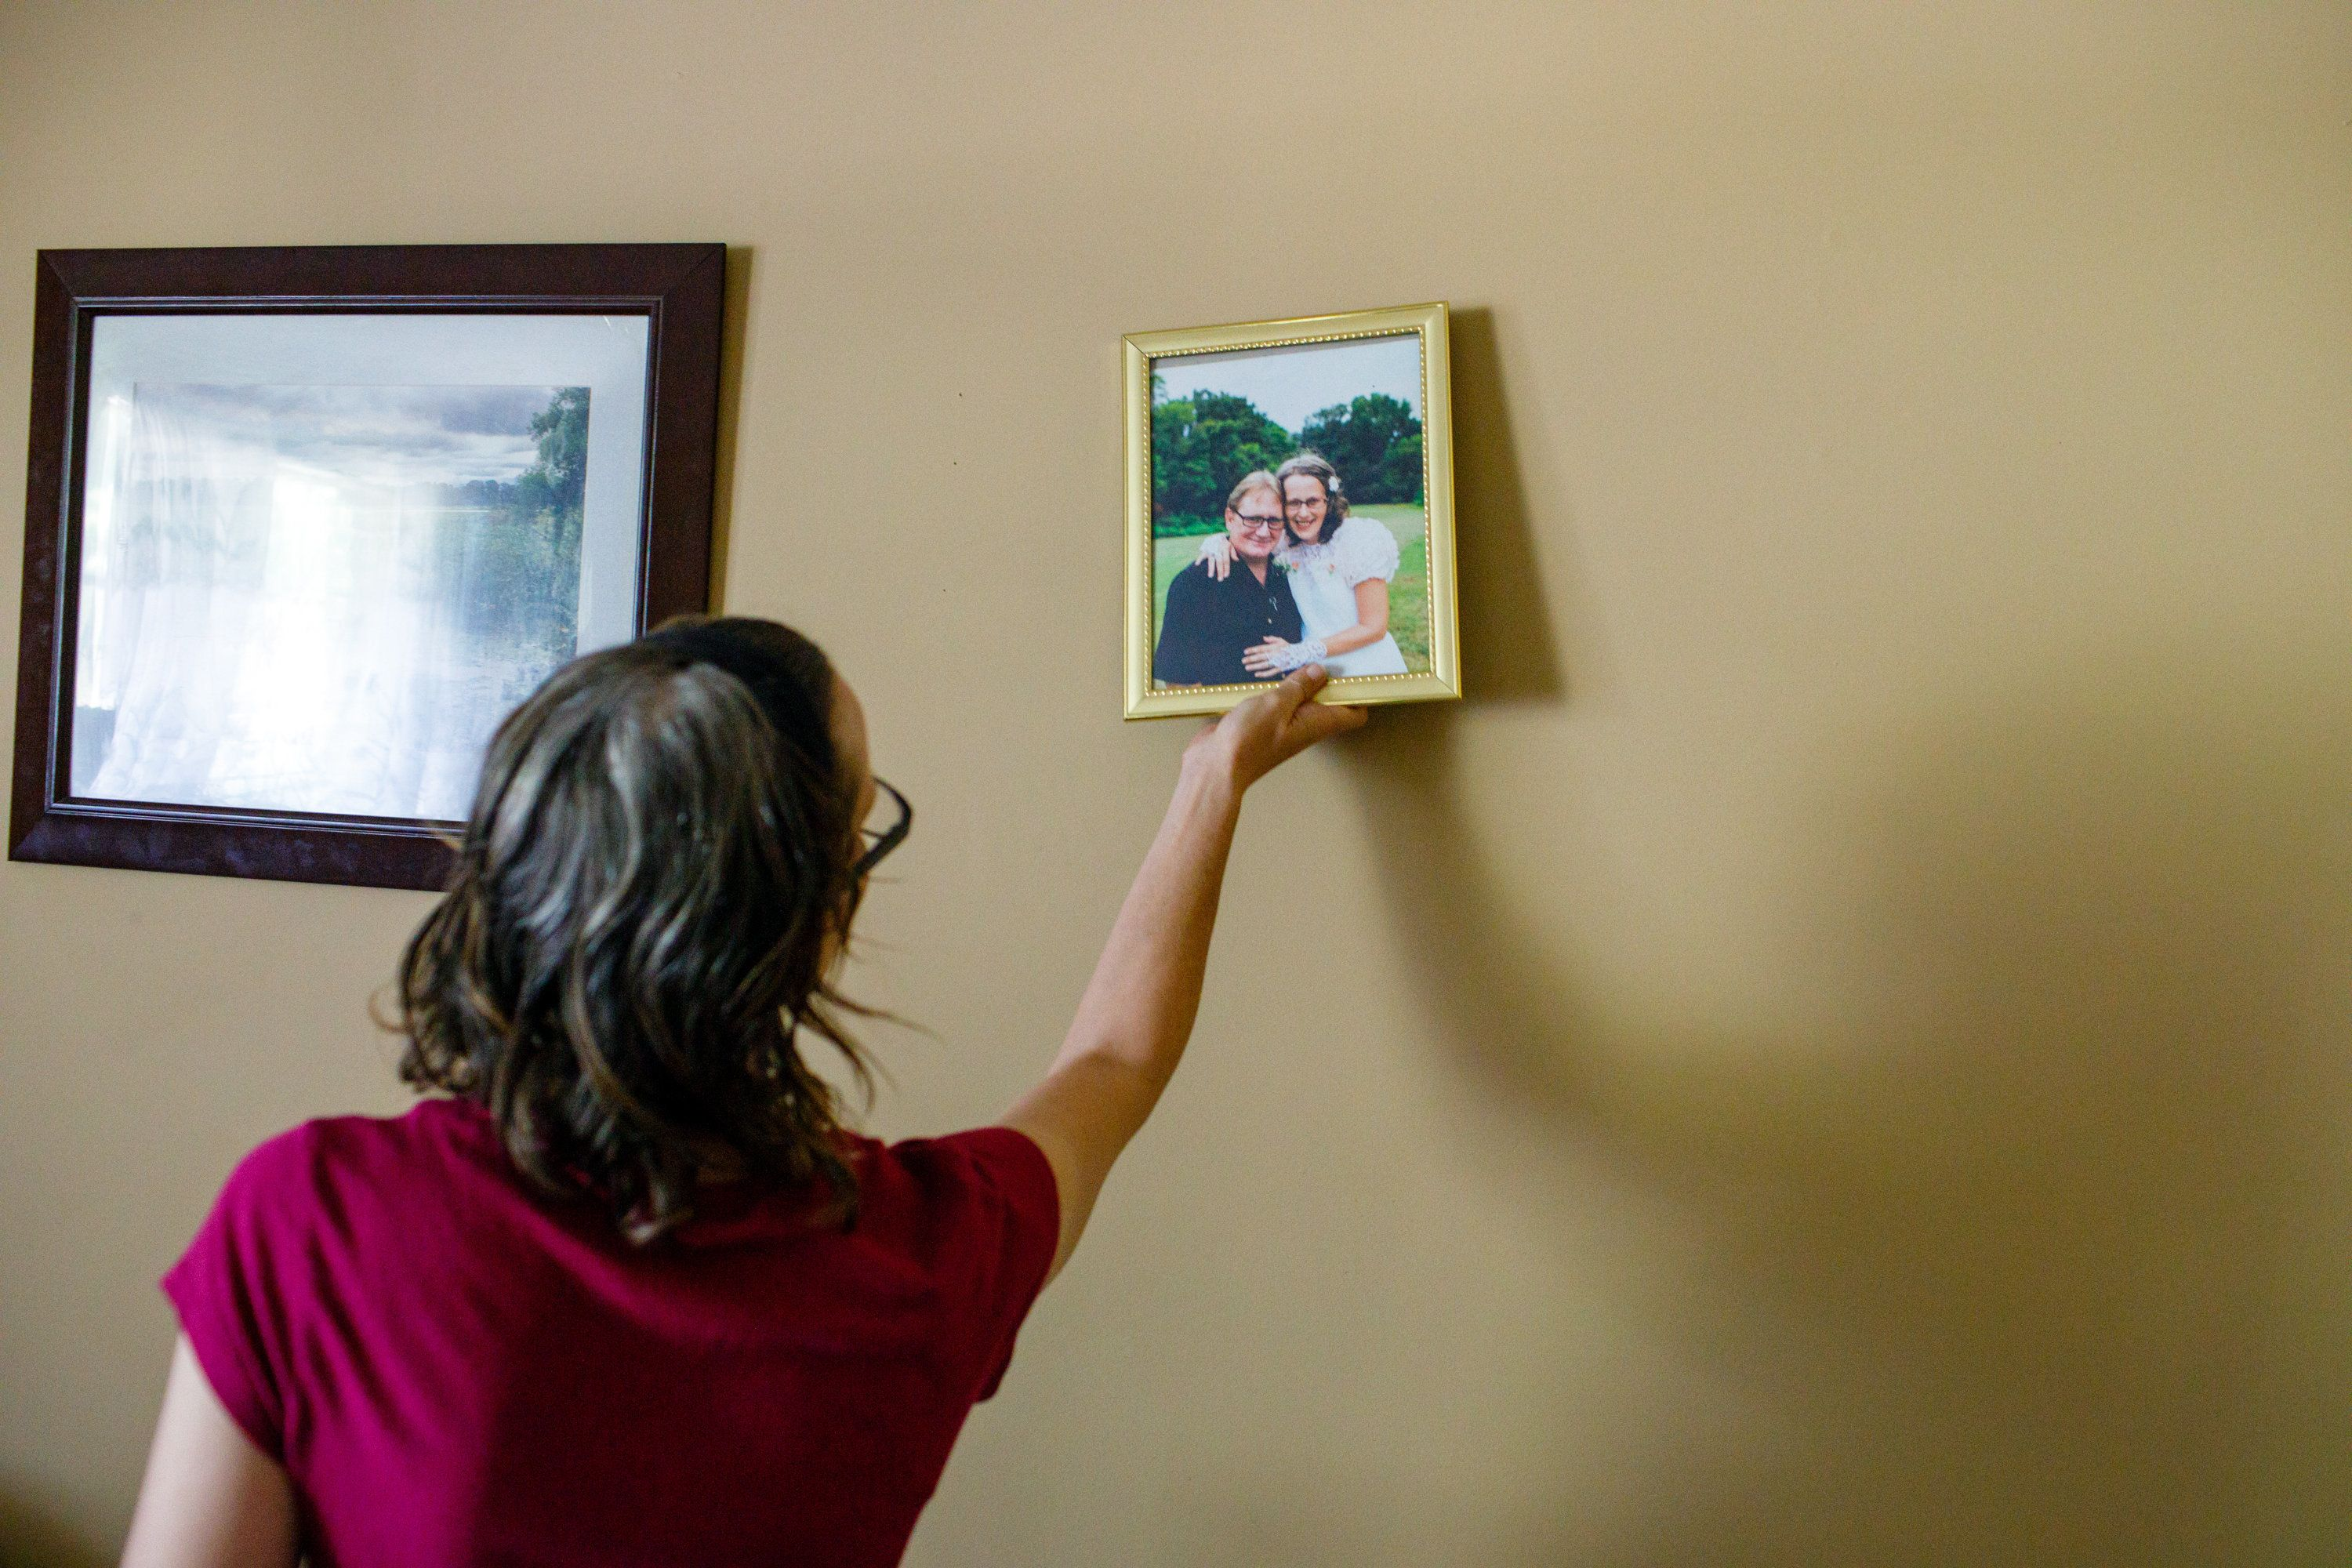 Meredith takes a framed photo of her and her husband, Jay, on their wedding day.